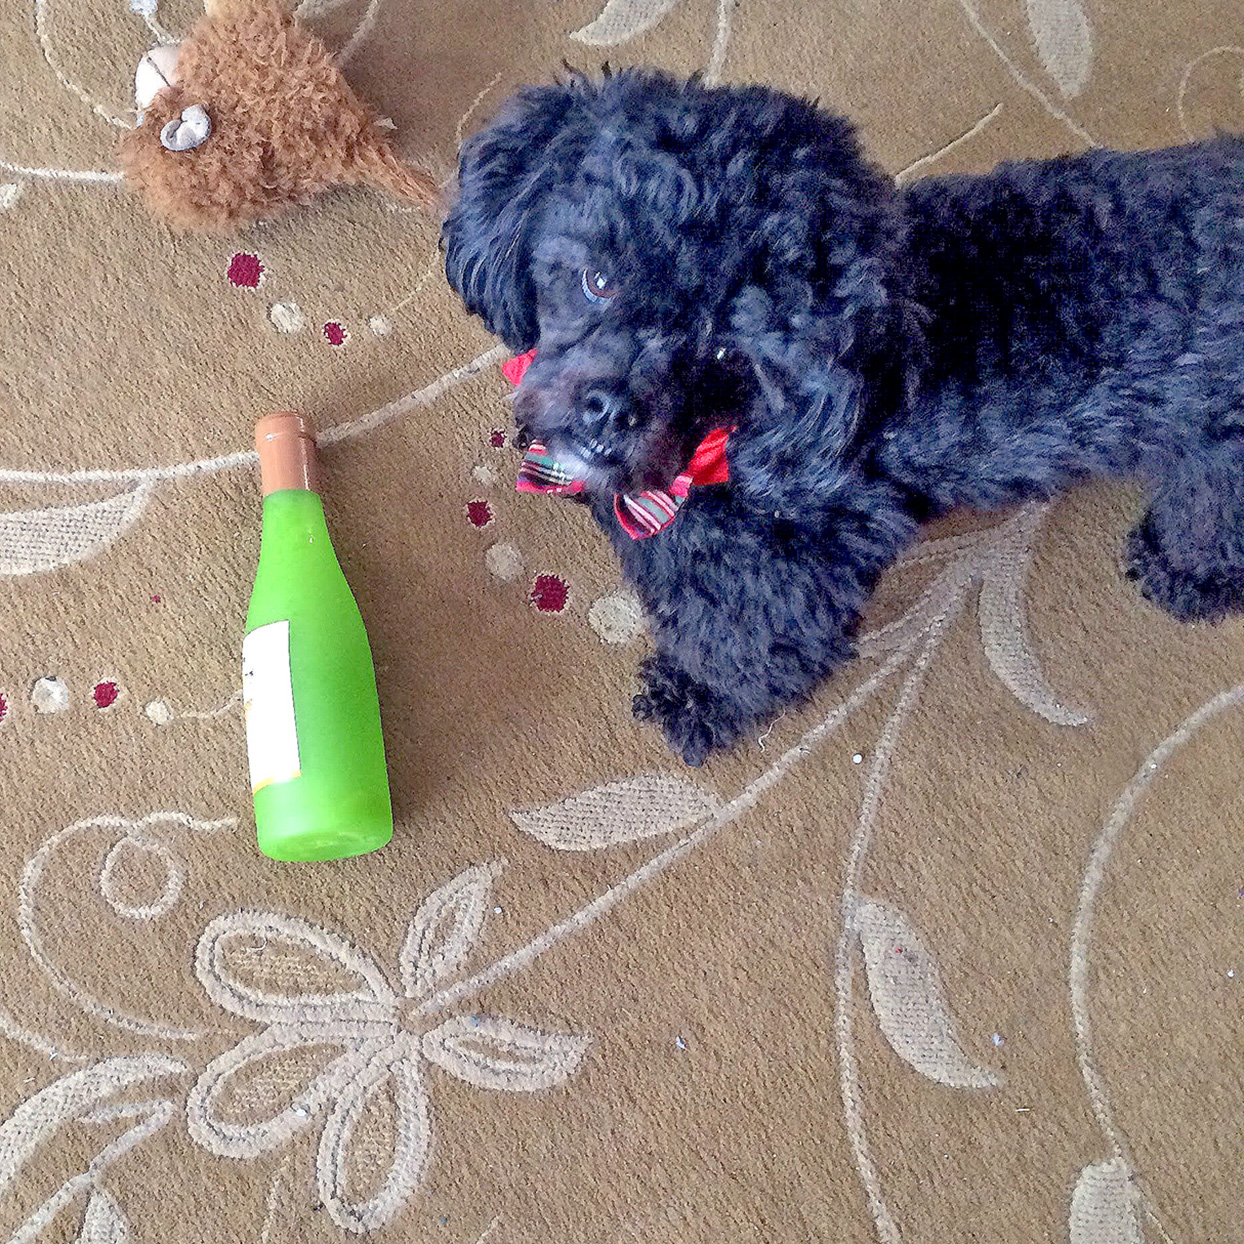 Black poodle stands next to a champagne bottle